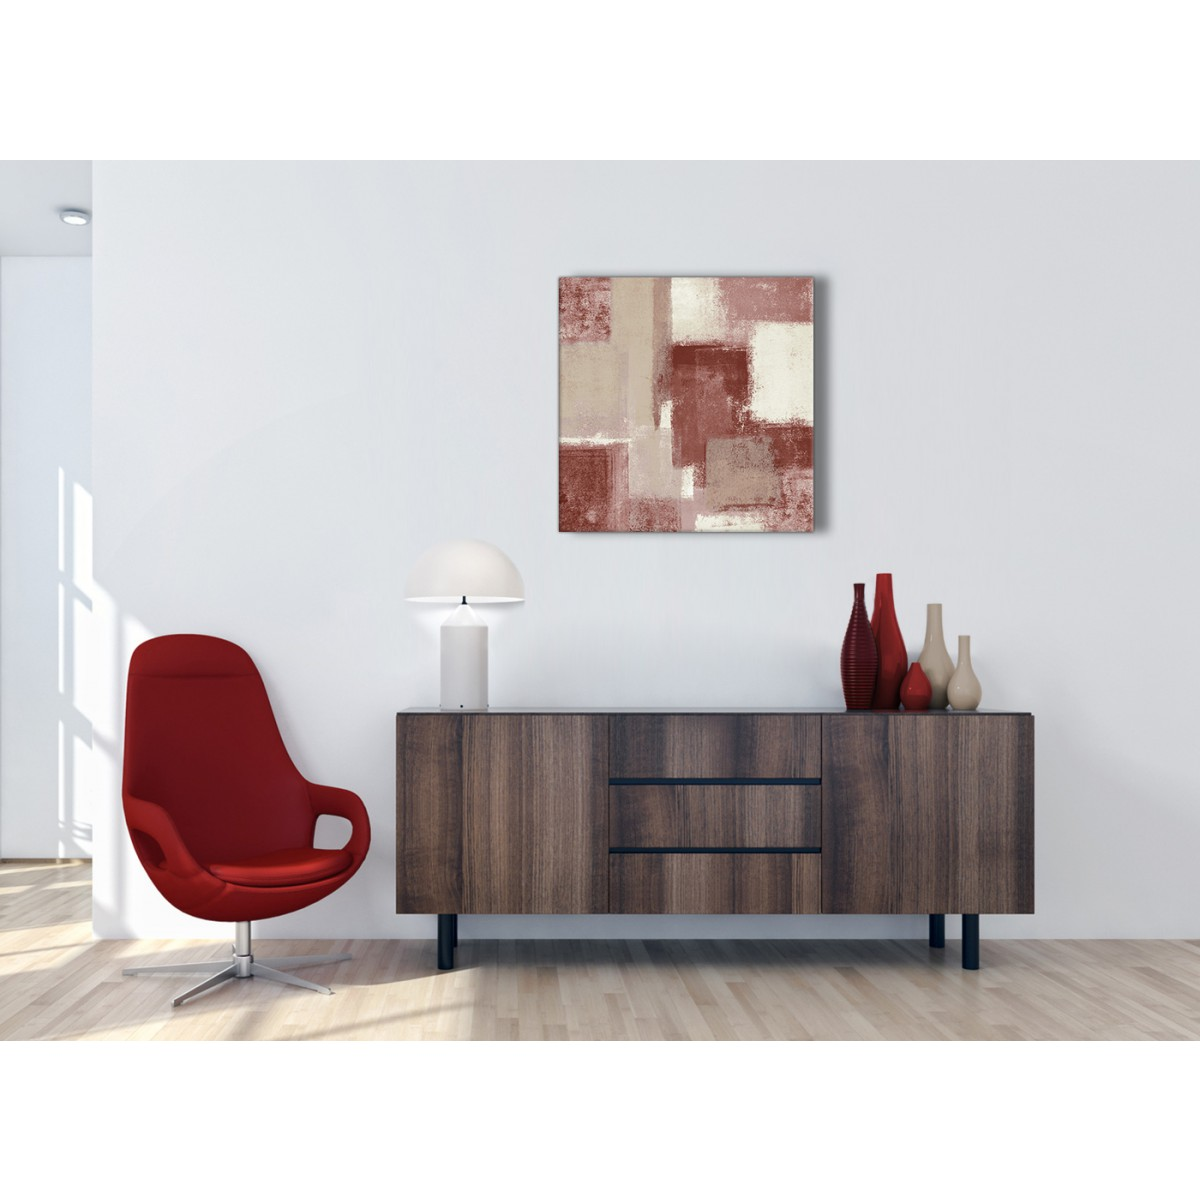 Red and Cream Hallway Canvas Pictures Decor - Abstract 1s370m - 64cm ...